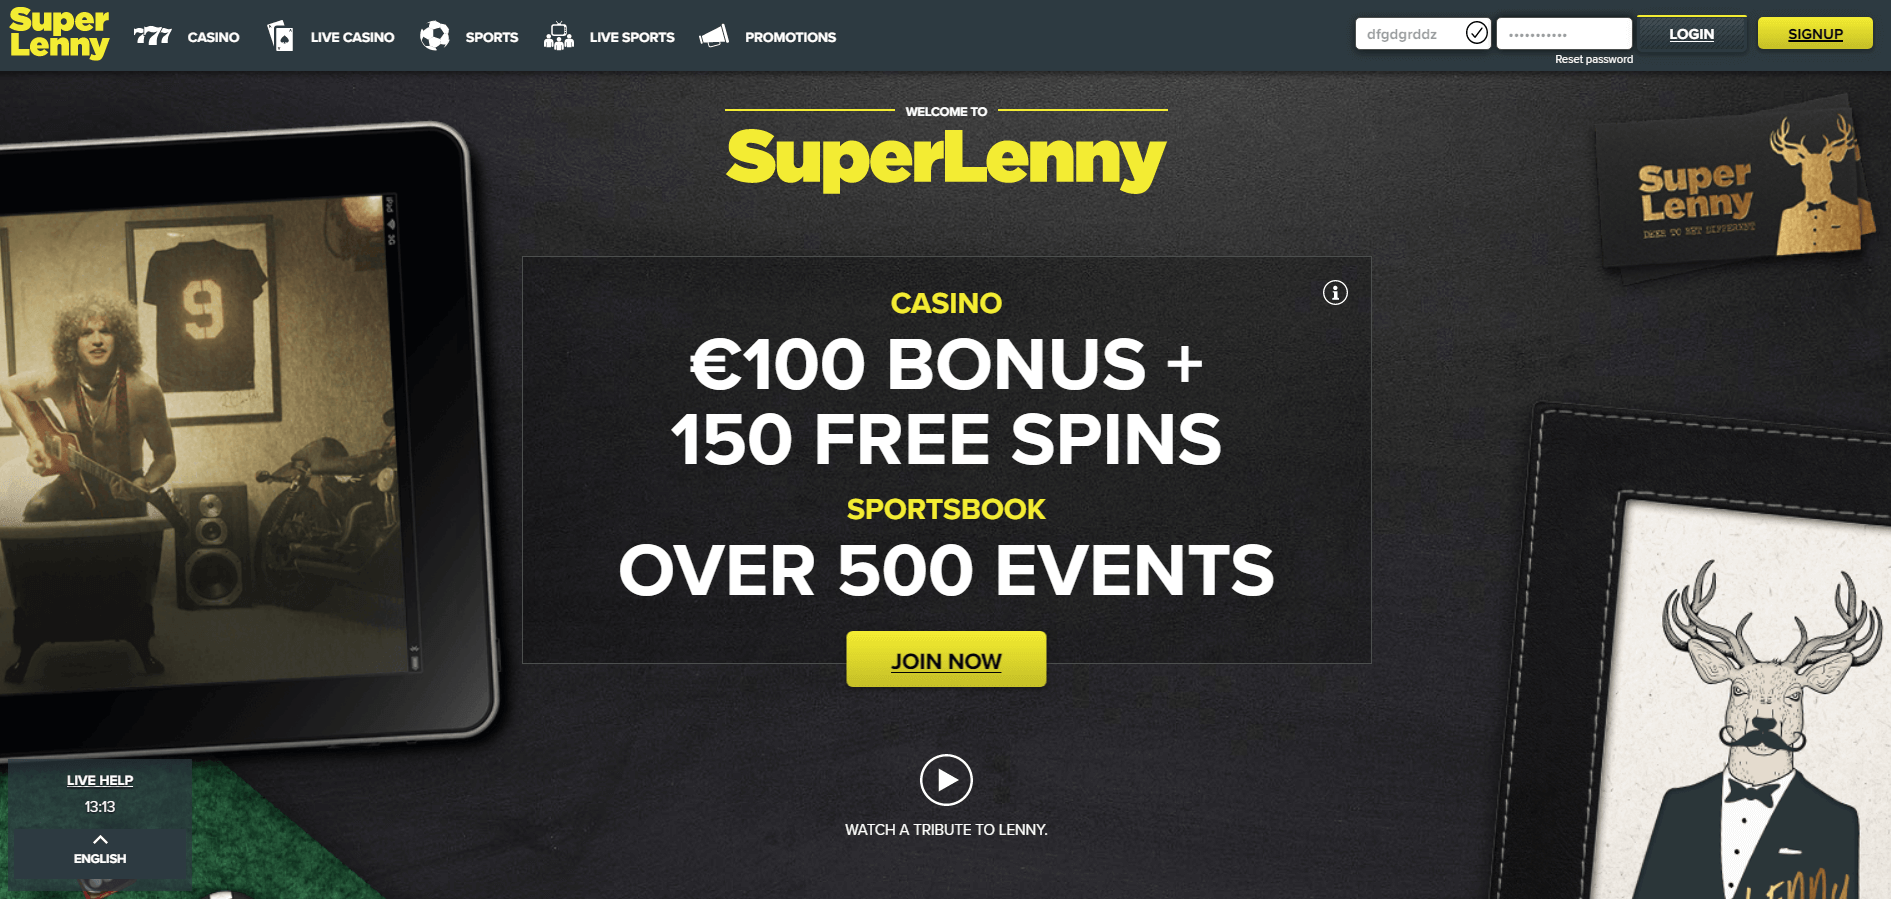 An image of the home page at Superlenny